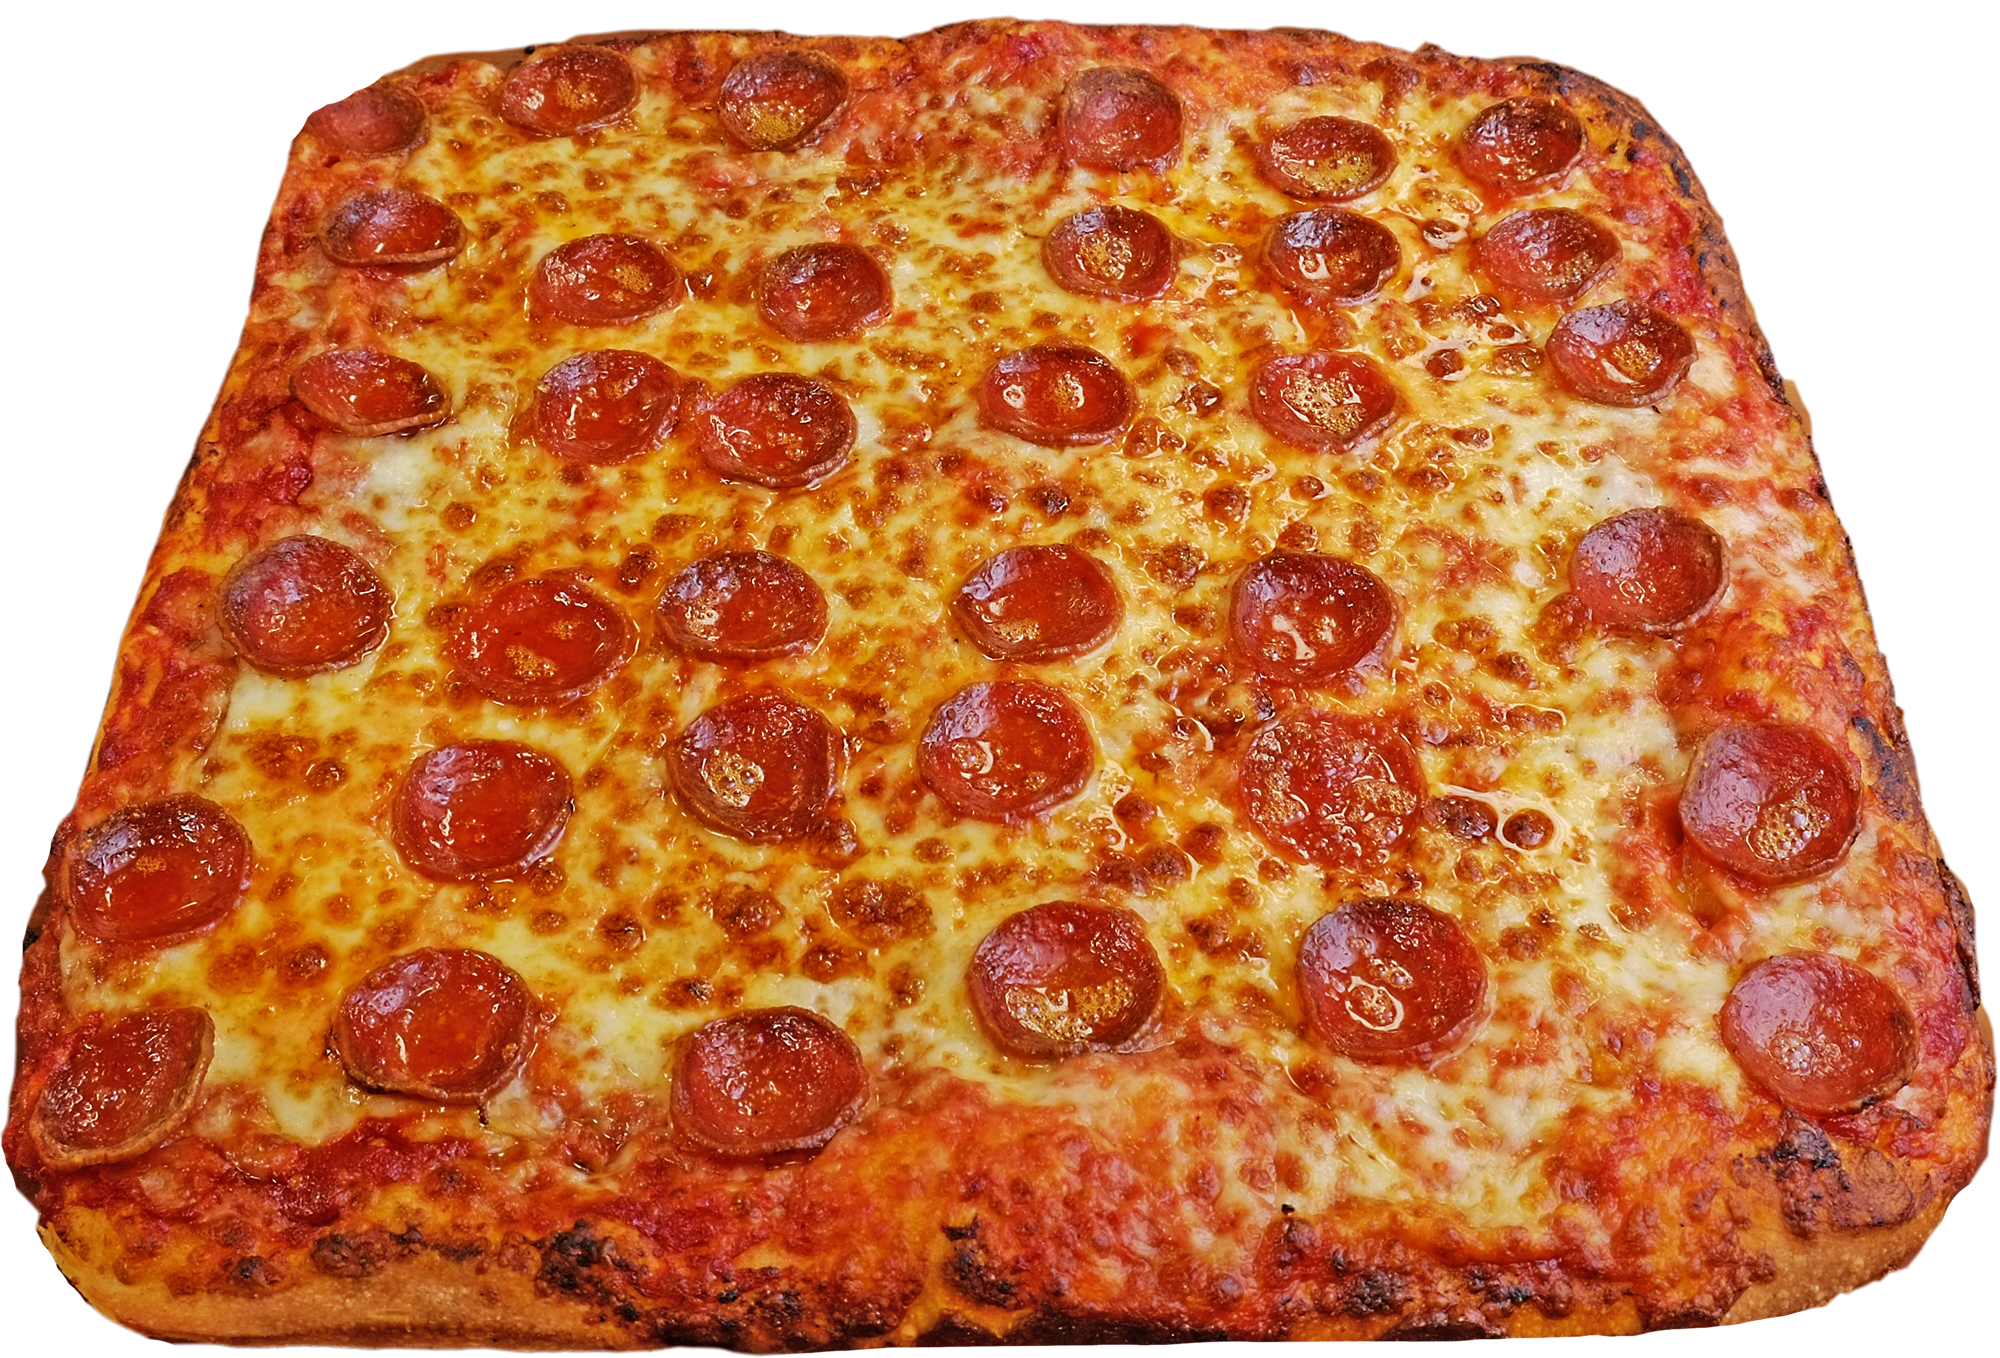 Full Pepperoni and Cheese Pizza